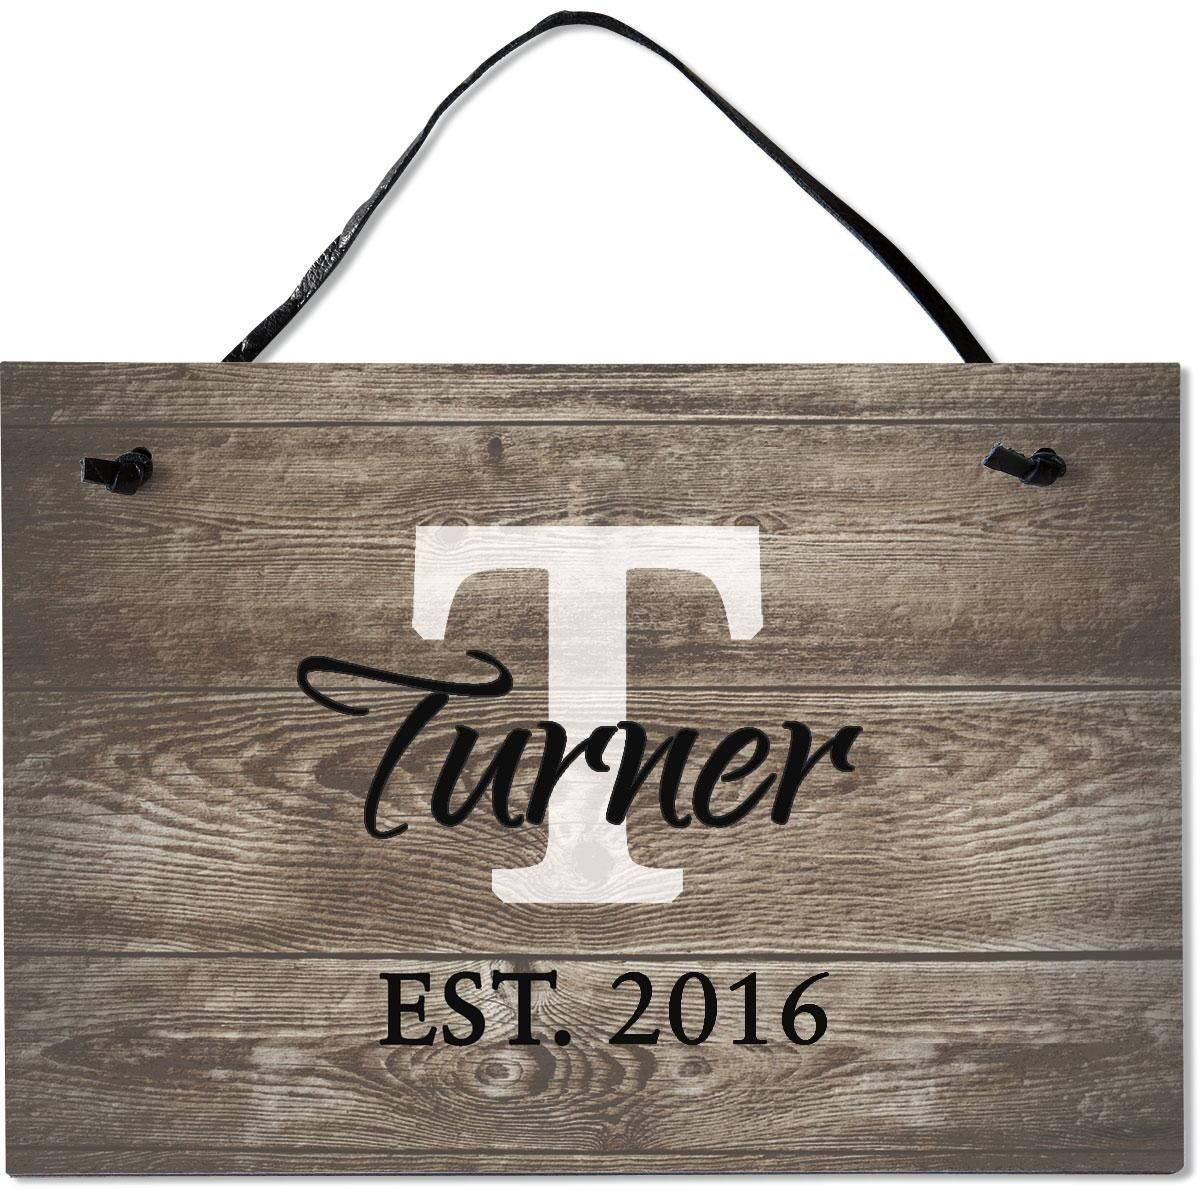 Established Personalized Wooden Plaque